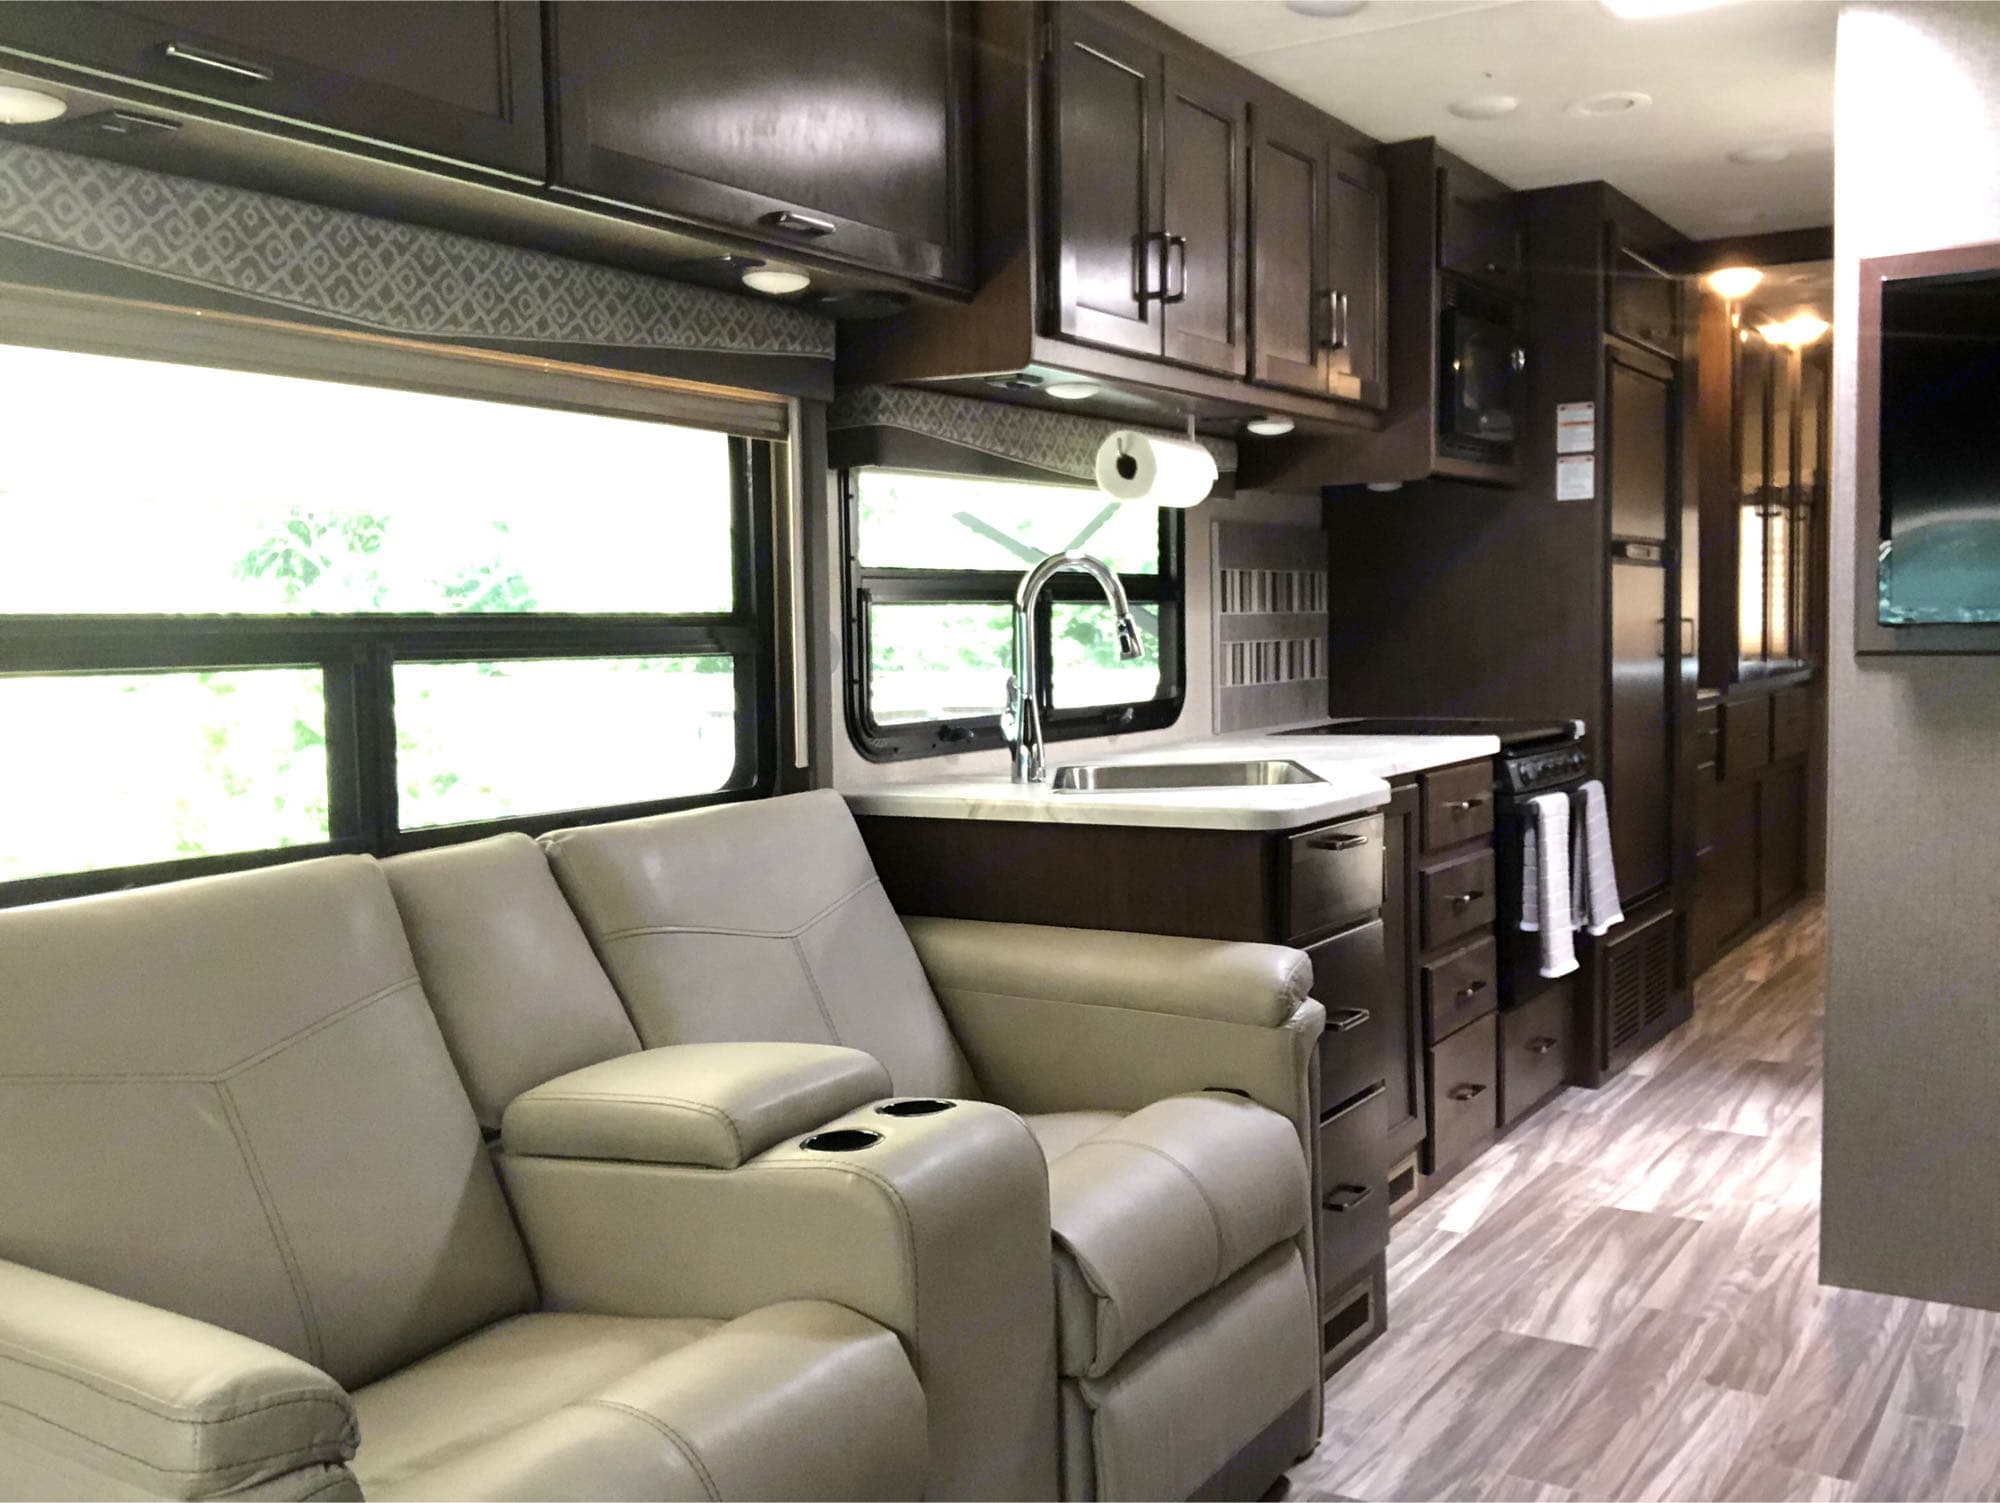 Recliners and Kitchen. Thor Motor Coach A.C.E 2020